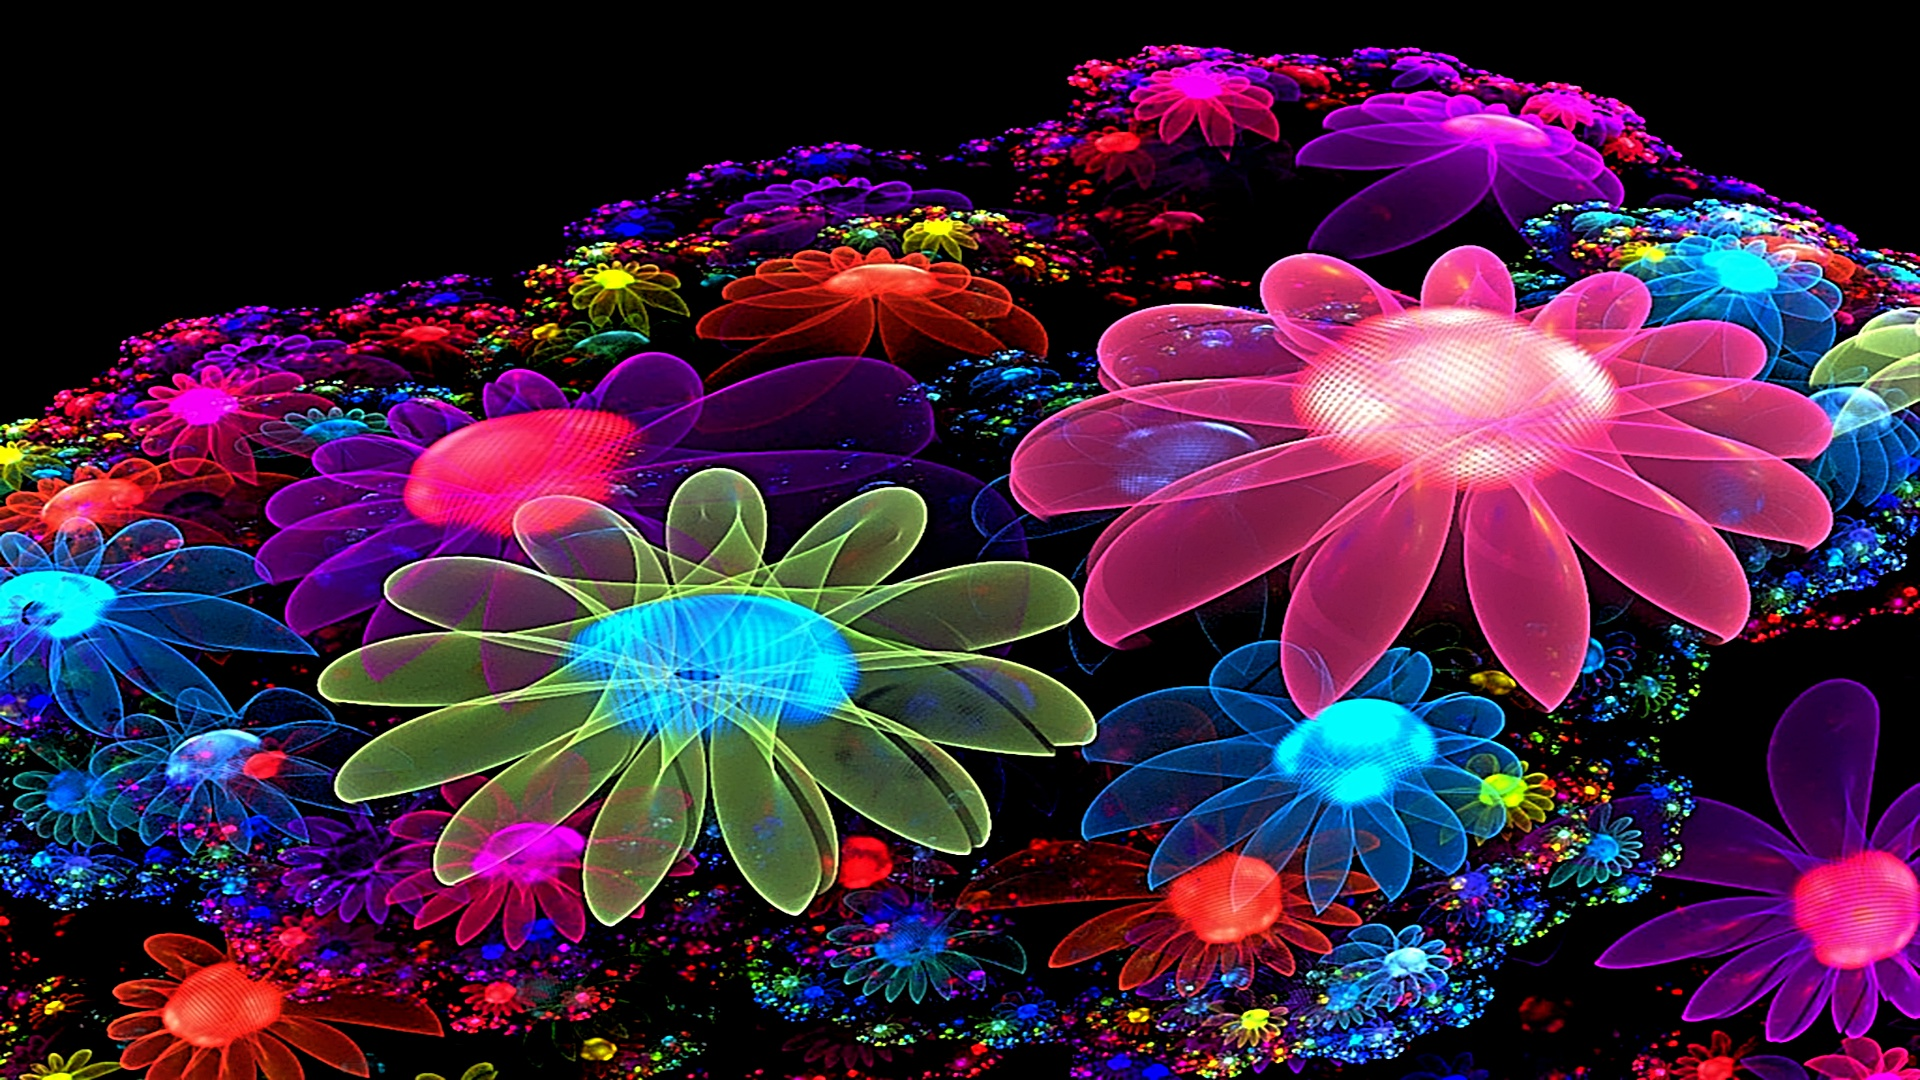 Desktop Wallpapers Images 8221 HD Wallpaper 3D Desktop 1920x1080